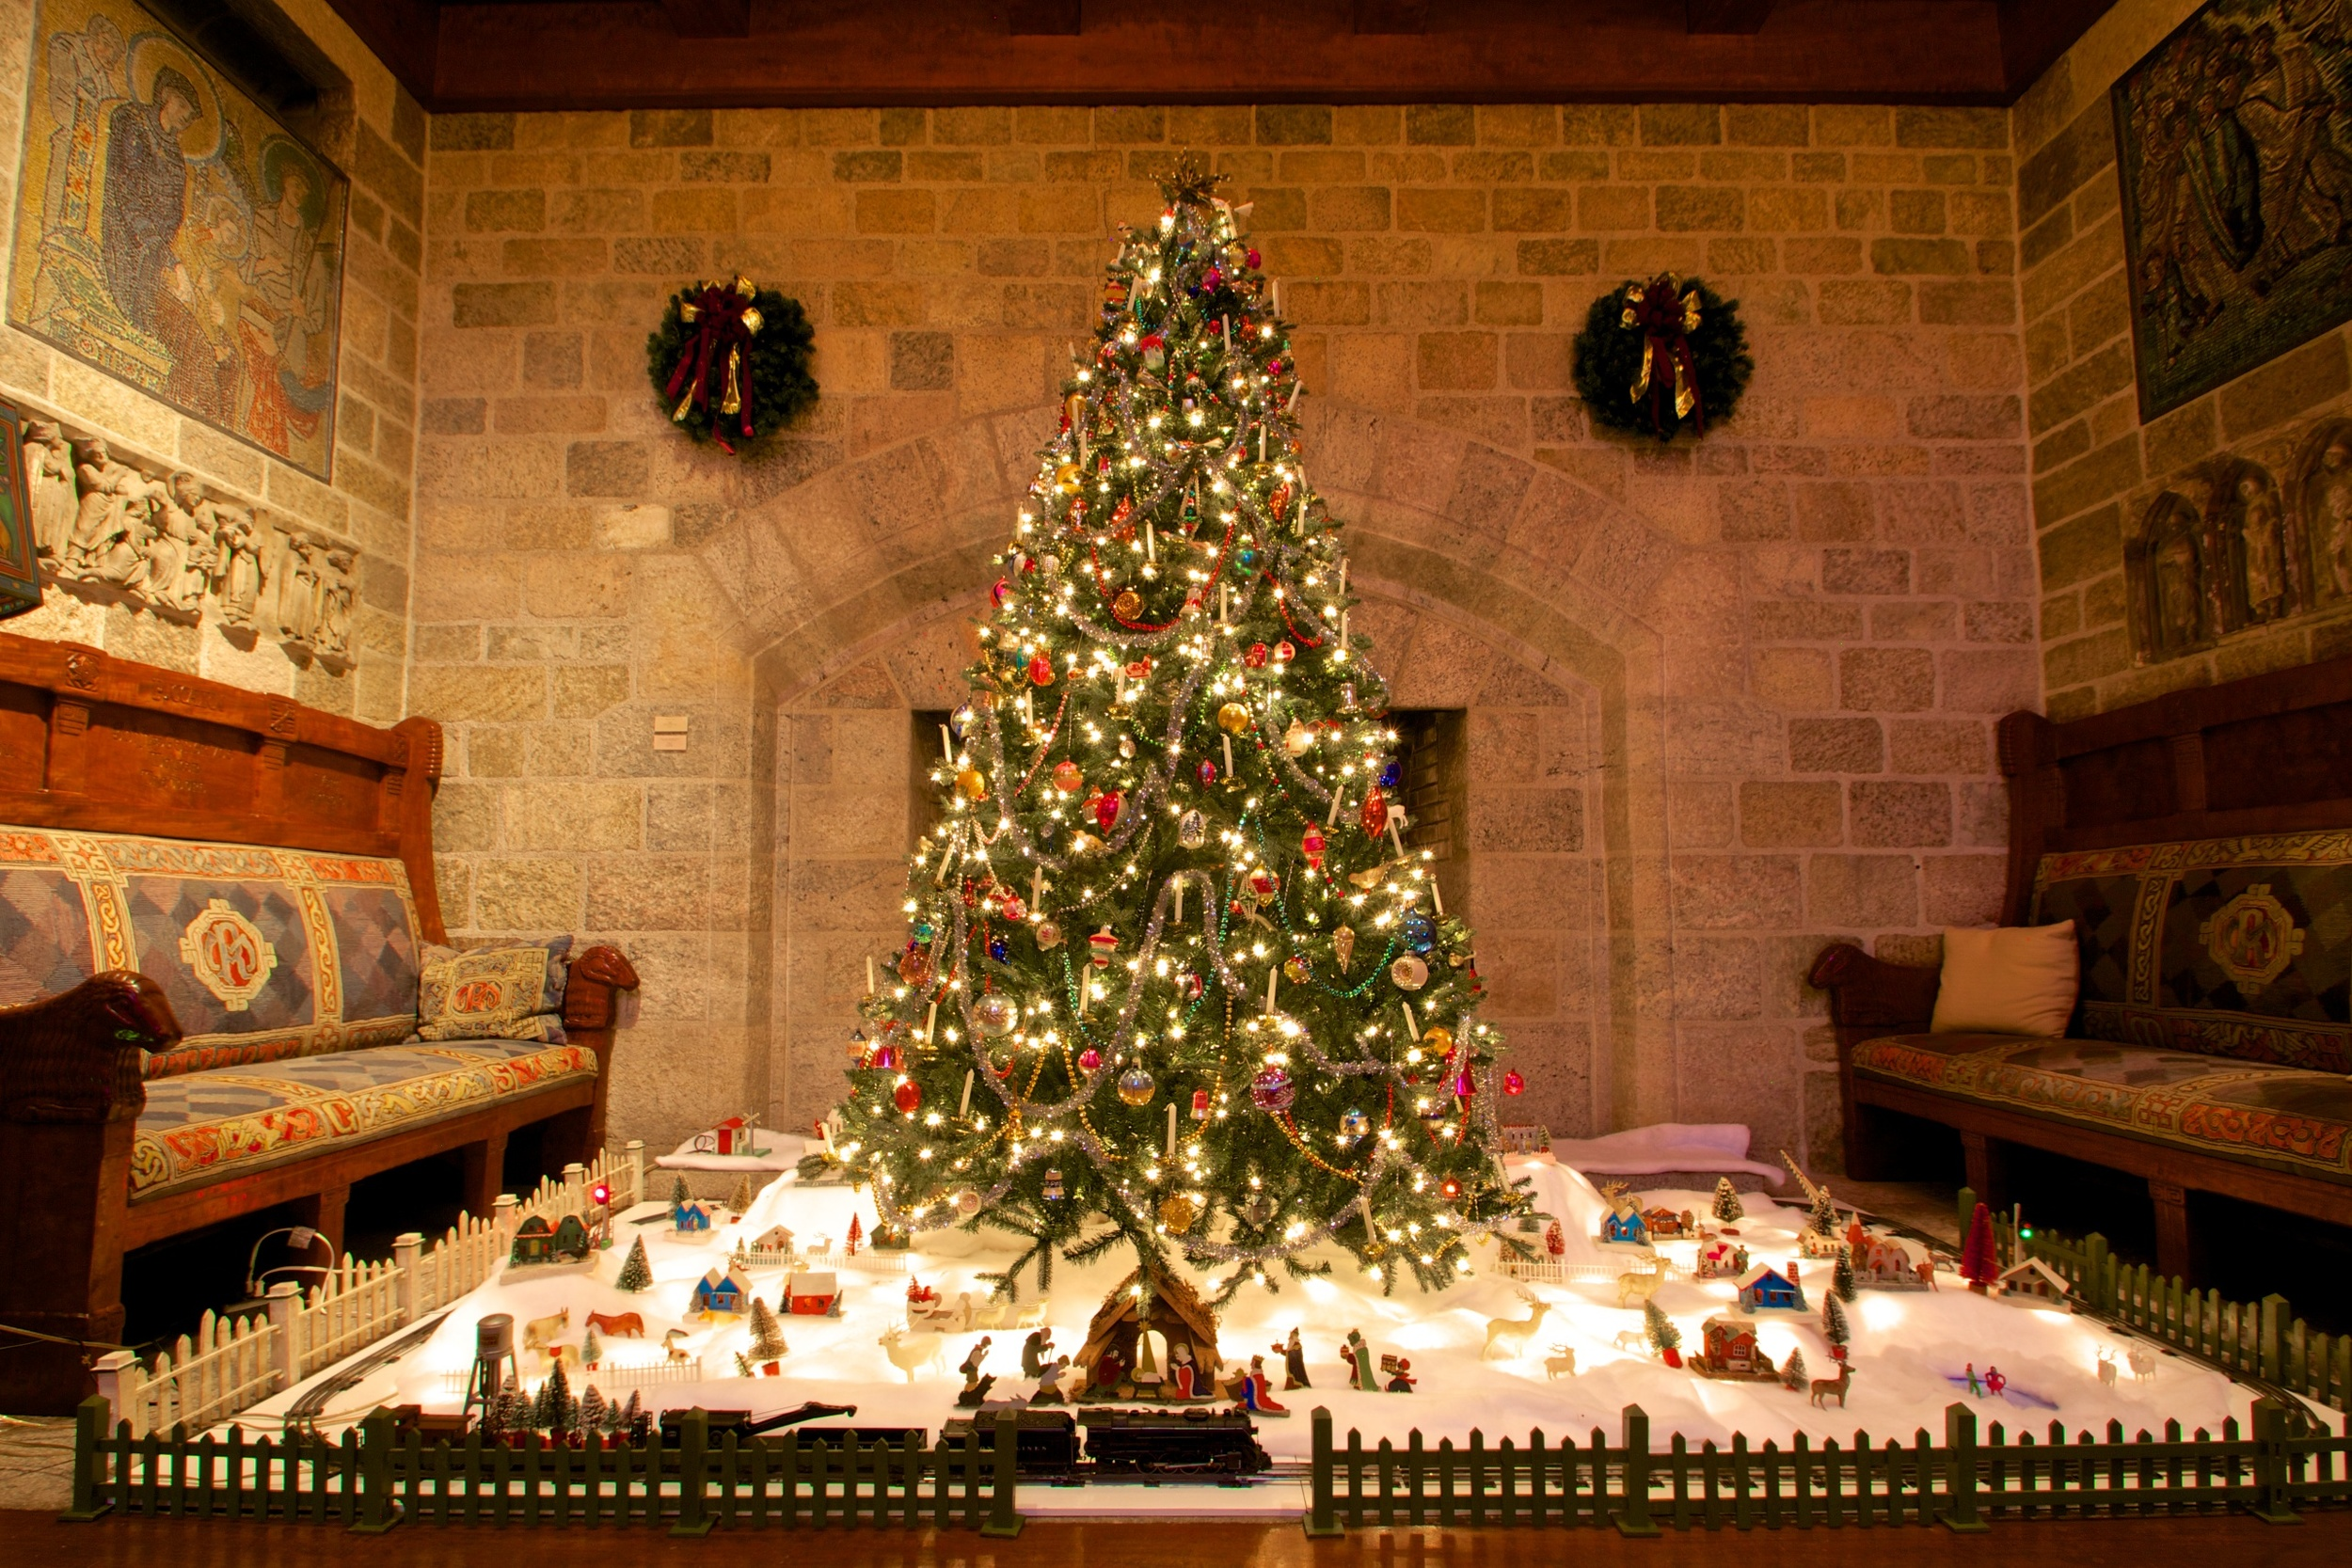 "Figure 1: Glencairn's vintage Christmas tree ornaments and Christmas village decorations were donated in 2011 by Brother Bob Reinke. Brother Bob, whose special love of Christmas has earned him the nickname ""Brother Christmas,"" joined the Brothers of the Poor of St. Francis in 1958. The Nativity scene beneath the tree this year was handmade in the 1930s by a family in eastern Germany, and was part of the village scene beneath their Christmas tree. The operating 1950s Lionel toy train was donated by Louise Chardos of Hoboken, New Jersey. Her brothers Jim, Steve and Hank collected the train and accessories as boys, setting them up annually beneath the family's Christmas tree."